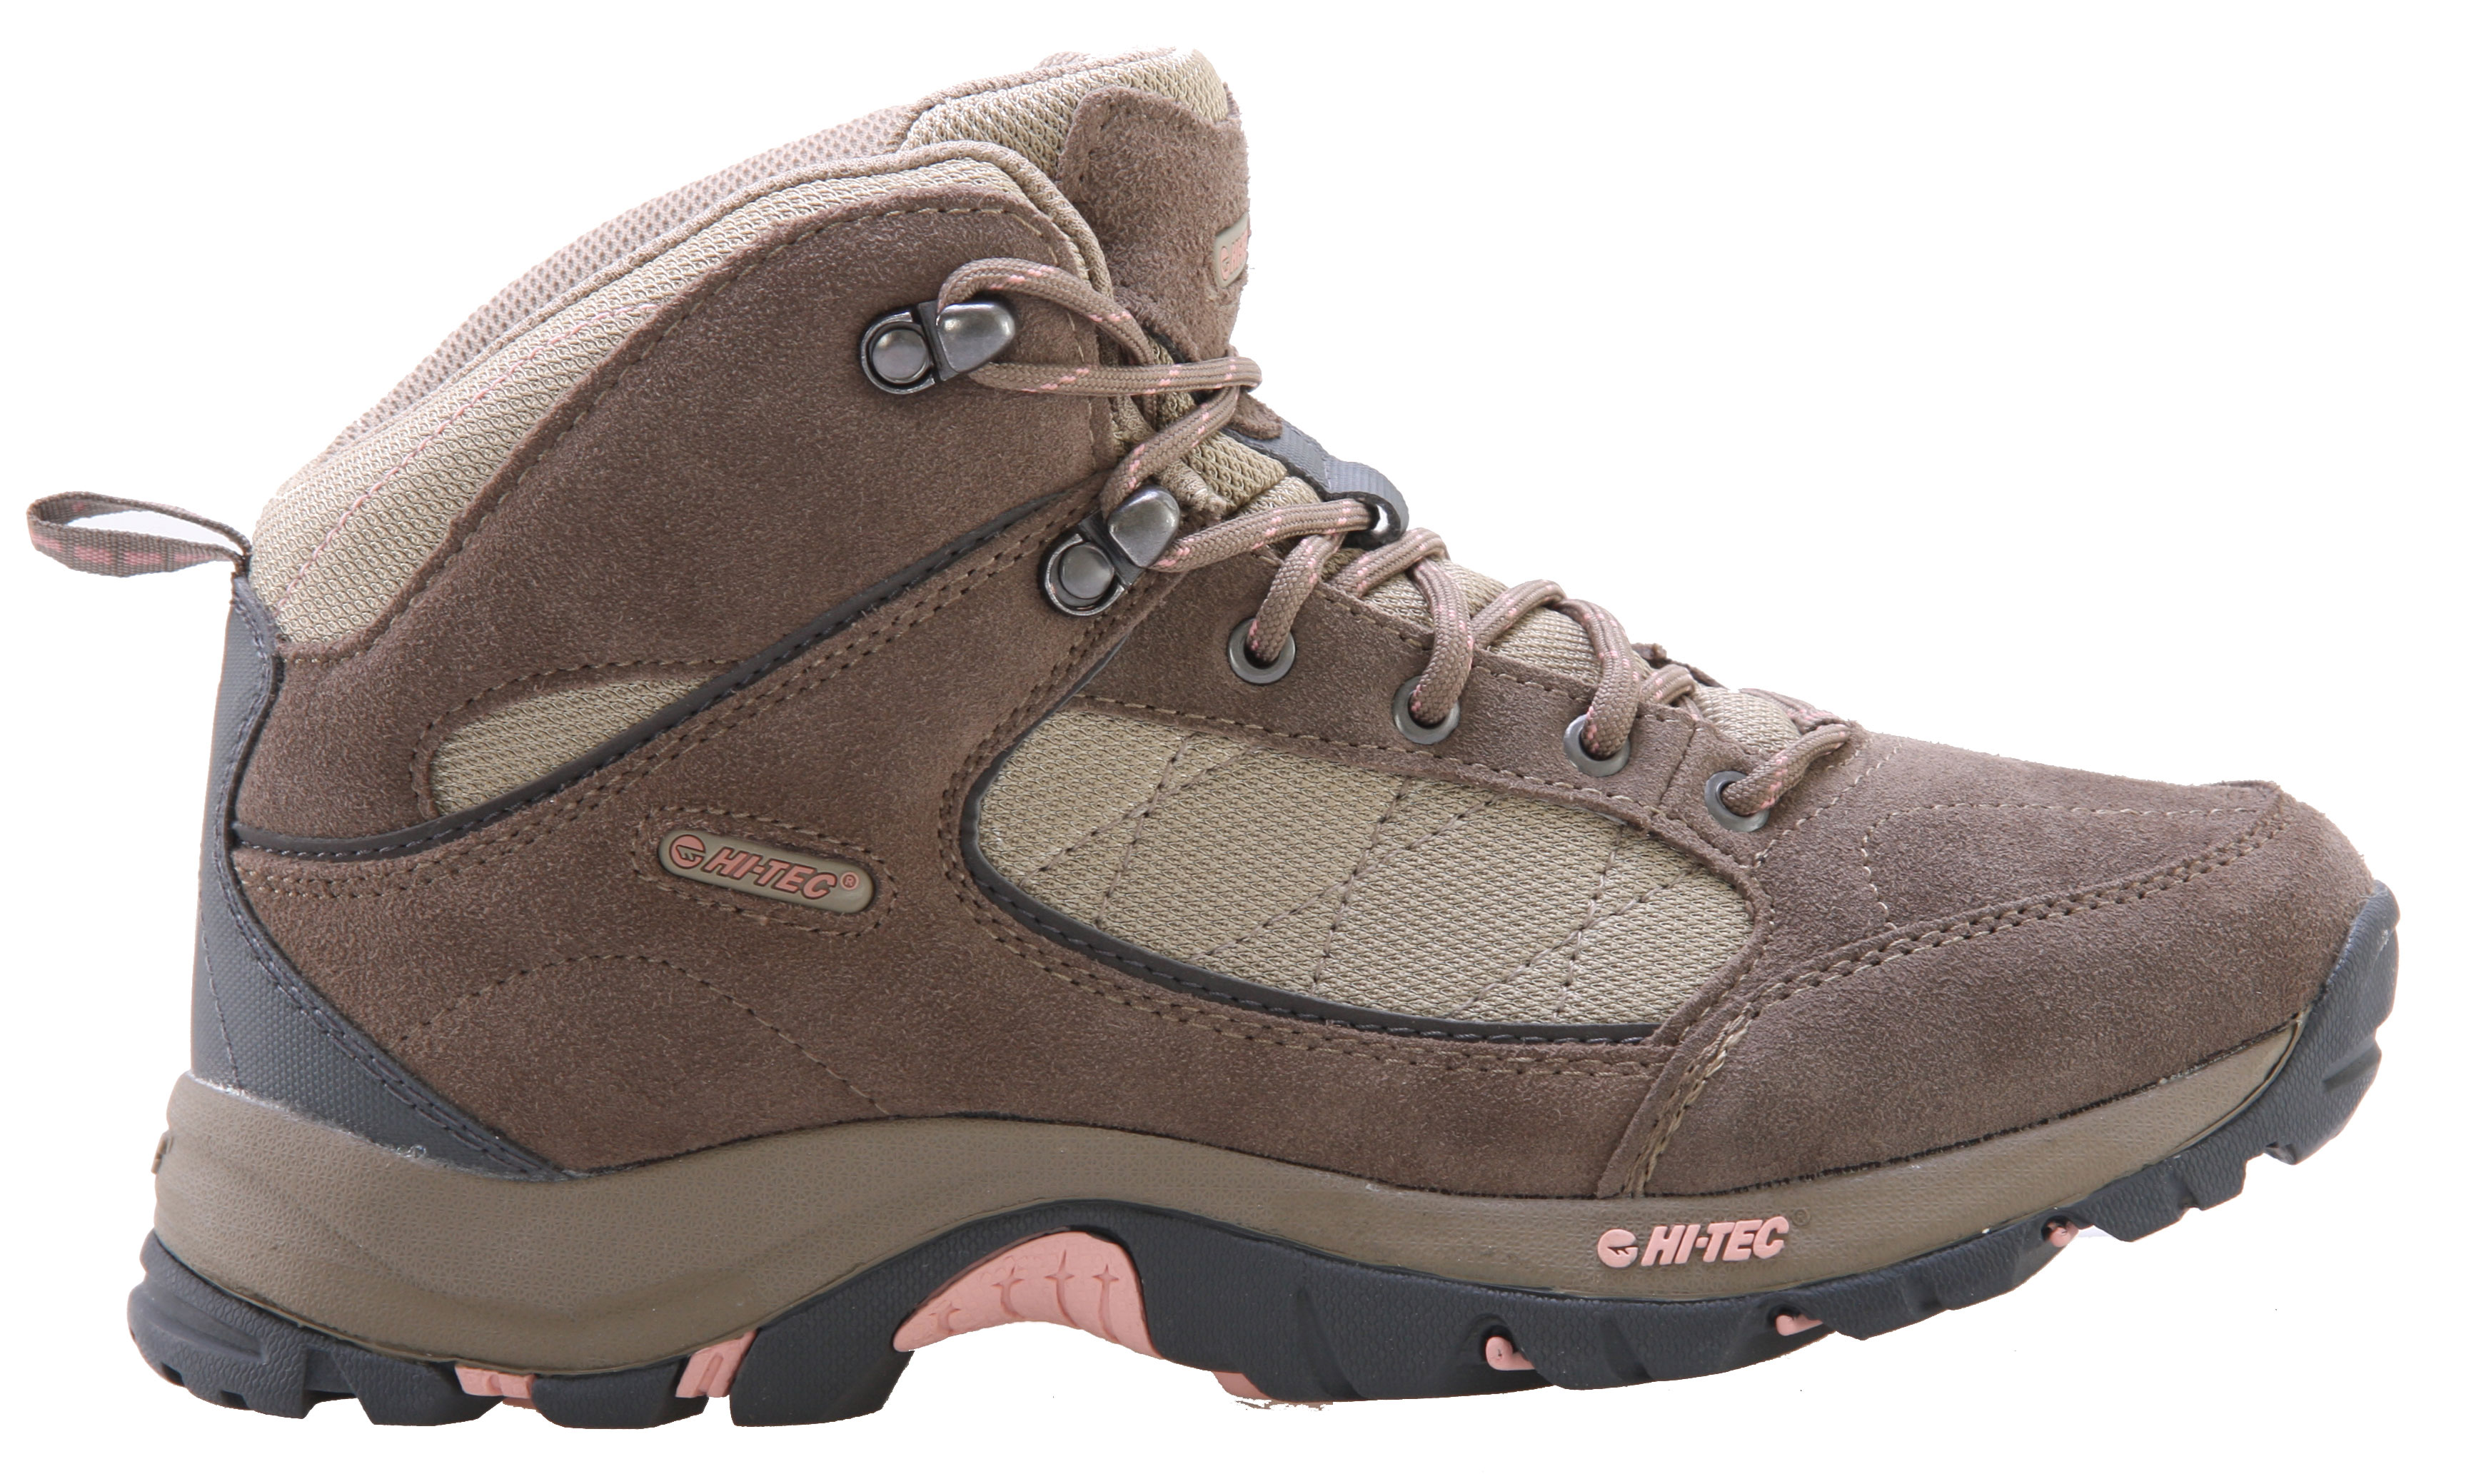 "Camp and Hike Hitec is quickly becoming one of the most popular names out there in the hiking and outwear industry and has become known for offering high quality gear for a price that turns a ""buy"" into a ""deal"". These Kuleni Mid Hiking Shoes give you the safety and comfort you need for long outdoor excursions, and the suede leather outer material makes them look great off the trail as well, giving you a versatile piece of footwear.Key Features of the Hitec Kuleni Mid Hiking Shoes: Suede Leather And Breathable Mesh Upper Rustproof Brass Eyelets Heel Abrasion-Resistant Panel For Protection Moisture Wicking Lining Womens Specific Last For Superior Fit And Performance Comfort Tec Contoured Sock Liner Board Lasted With Steel Shank For Added Rigidity Durable Mdt Carbon Rubber Hiking Outsole - $32.95"